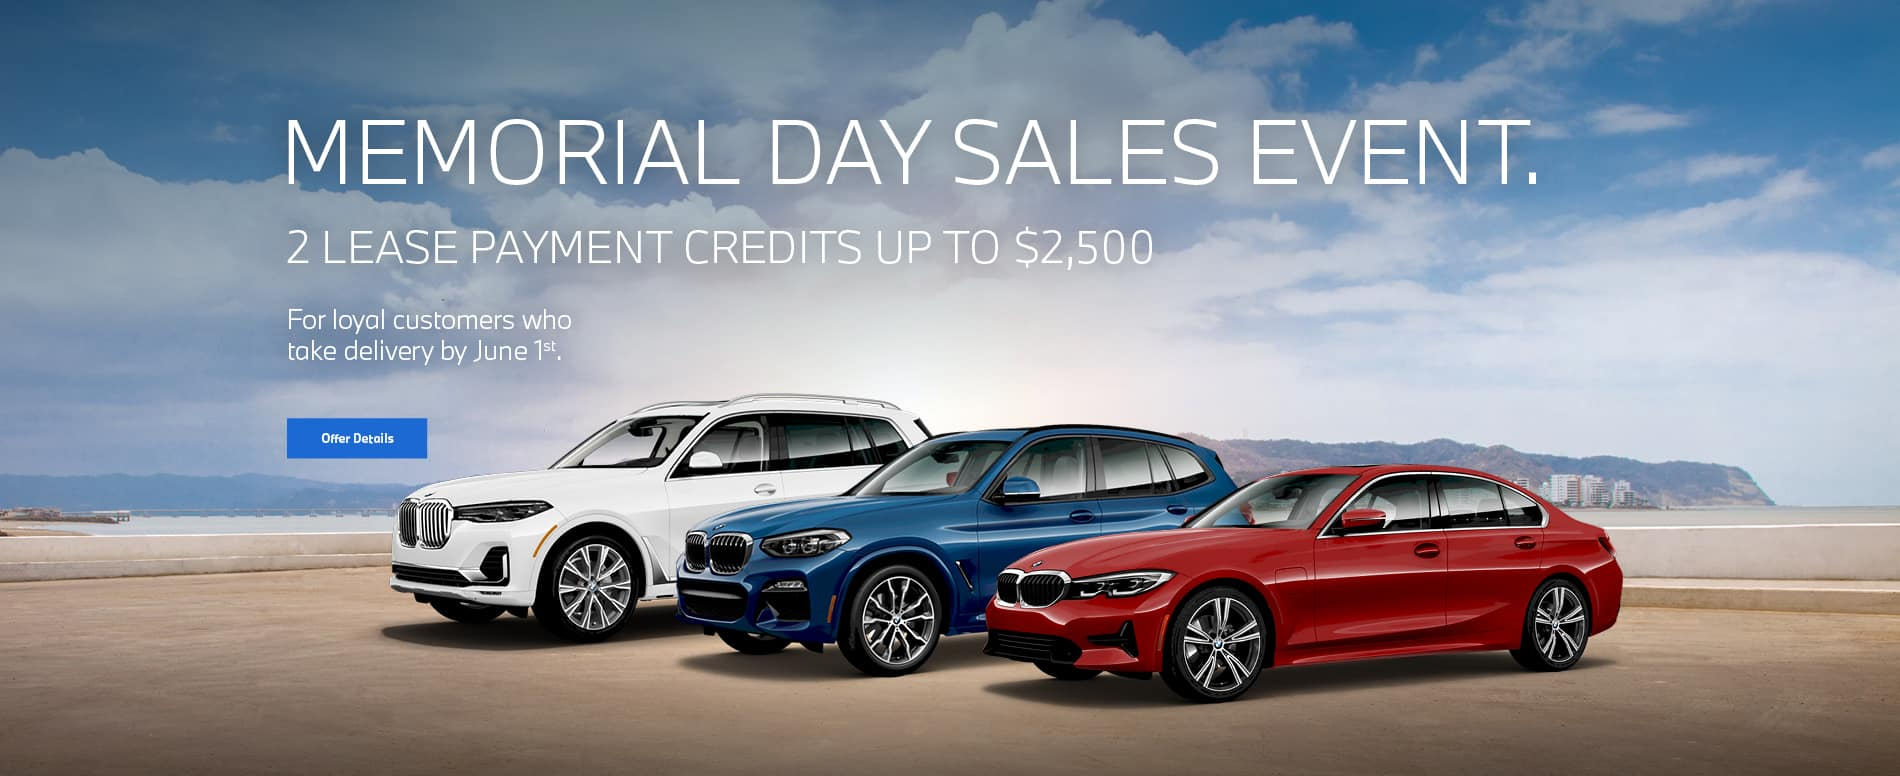 Welcome to Autobahn BMW Fort Worth | Great Memorial Day Sale Incentives!